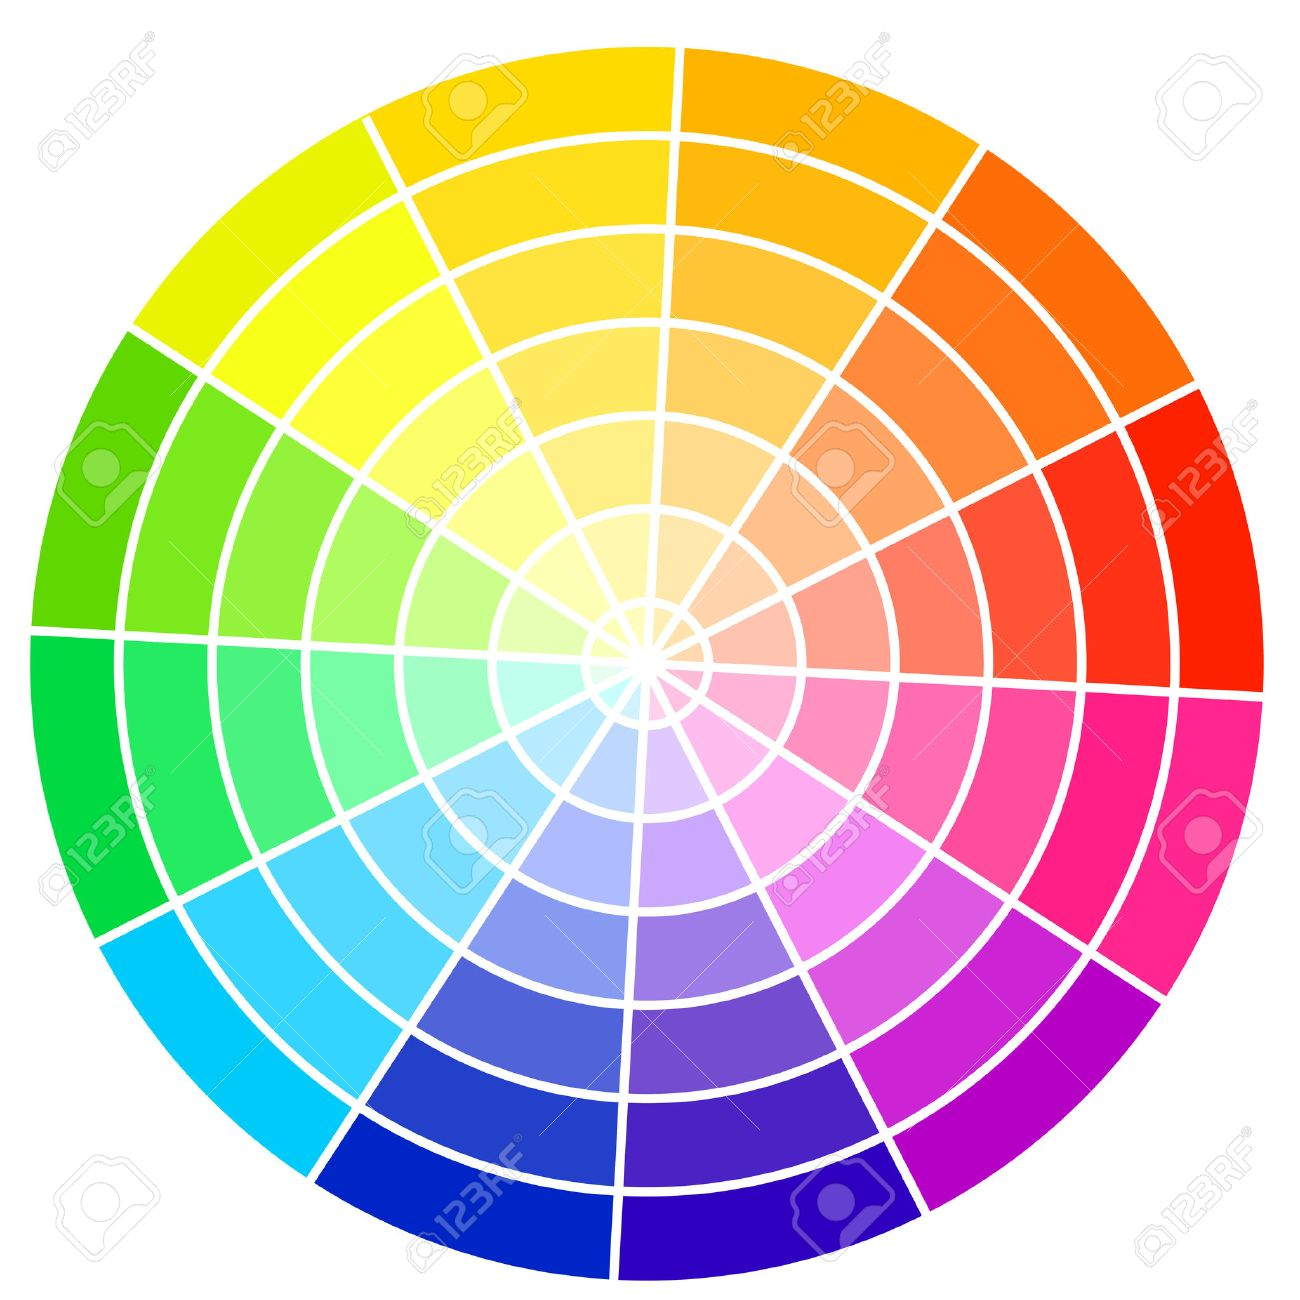 Standard color wheel isolated on white background vector illustration - 23656581